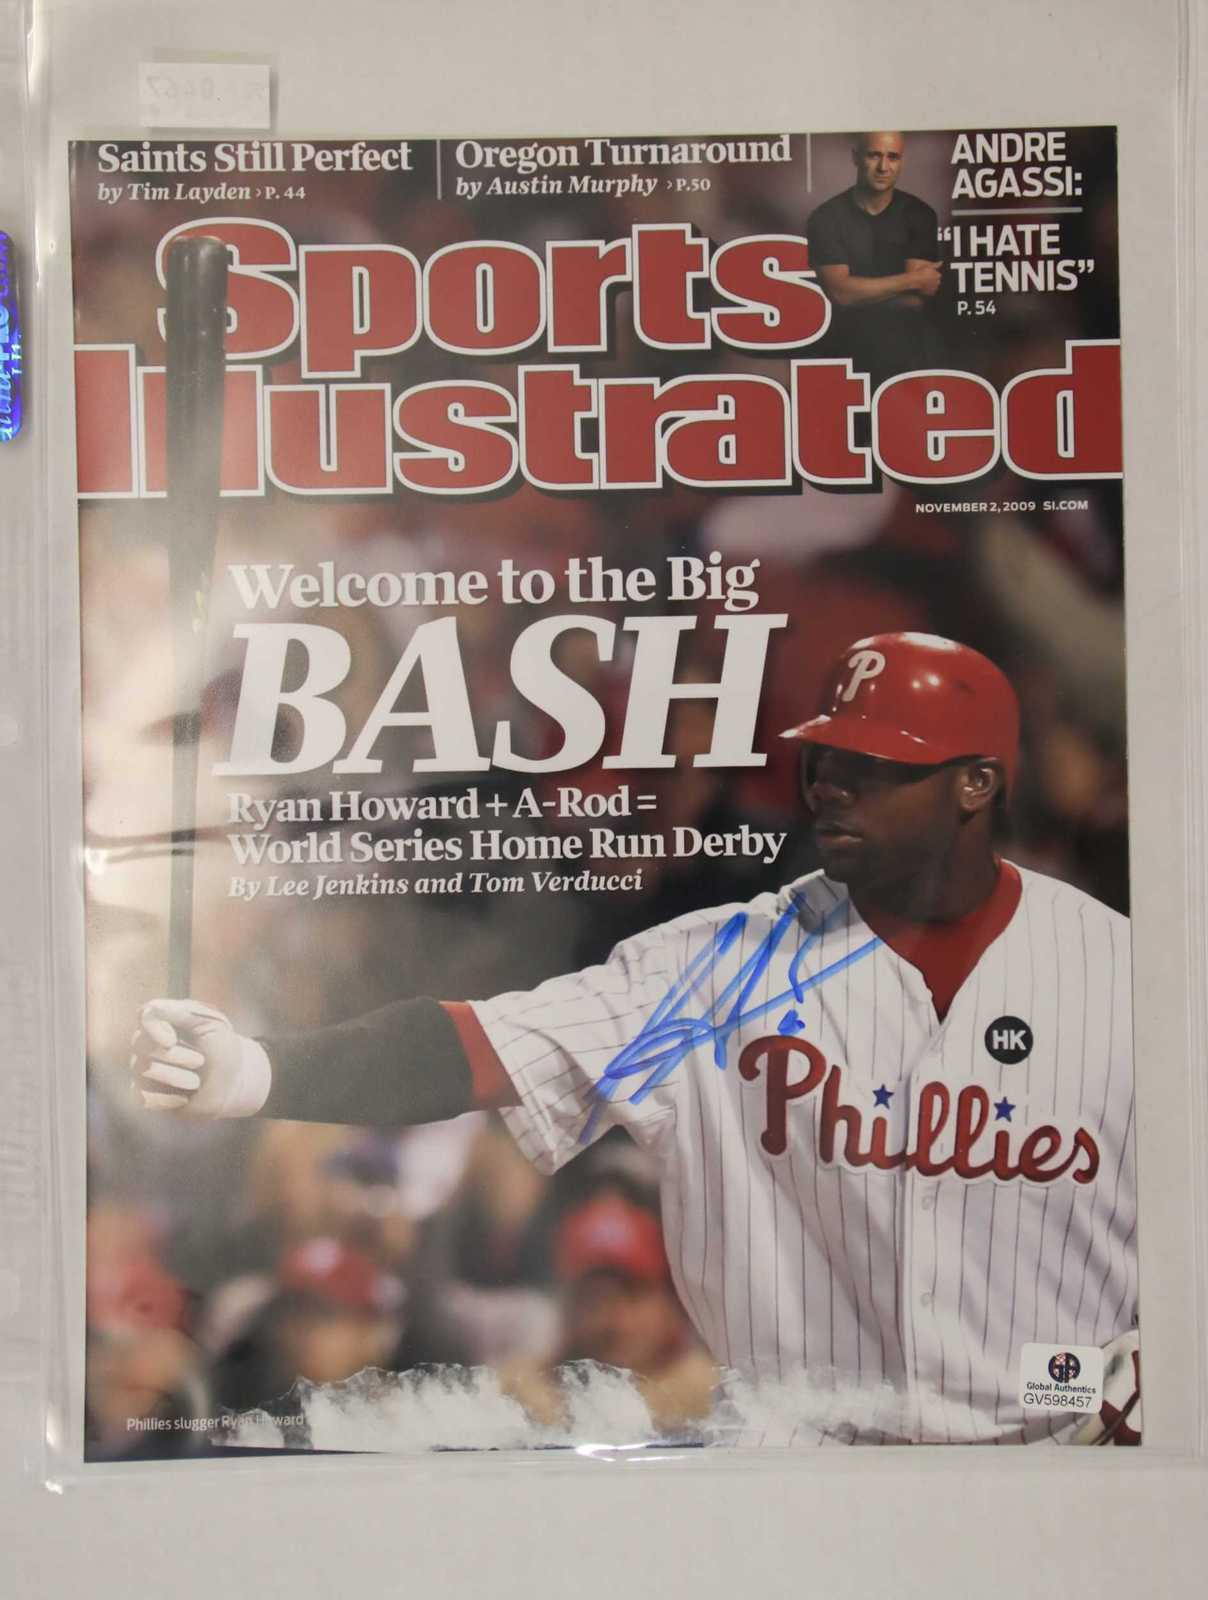 Primary image for Ryan Howard Signed Autographed Glossy 8x10 Photo (GAI) - Philadelphia Phillies